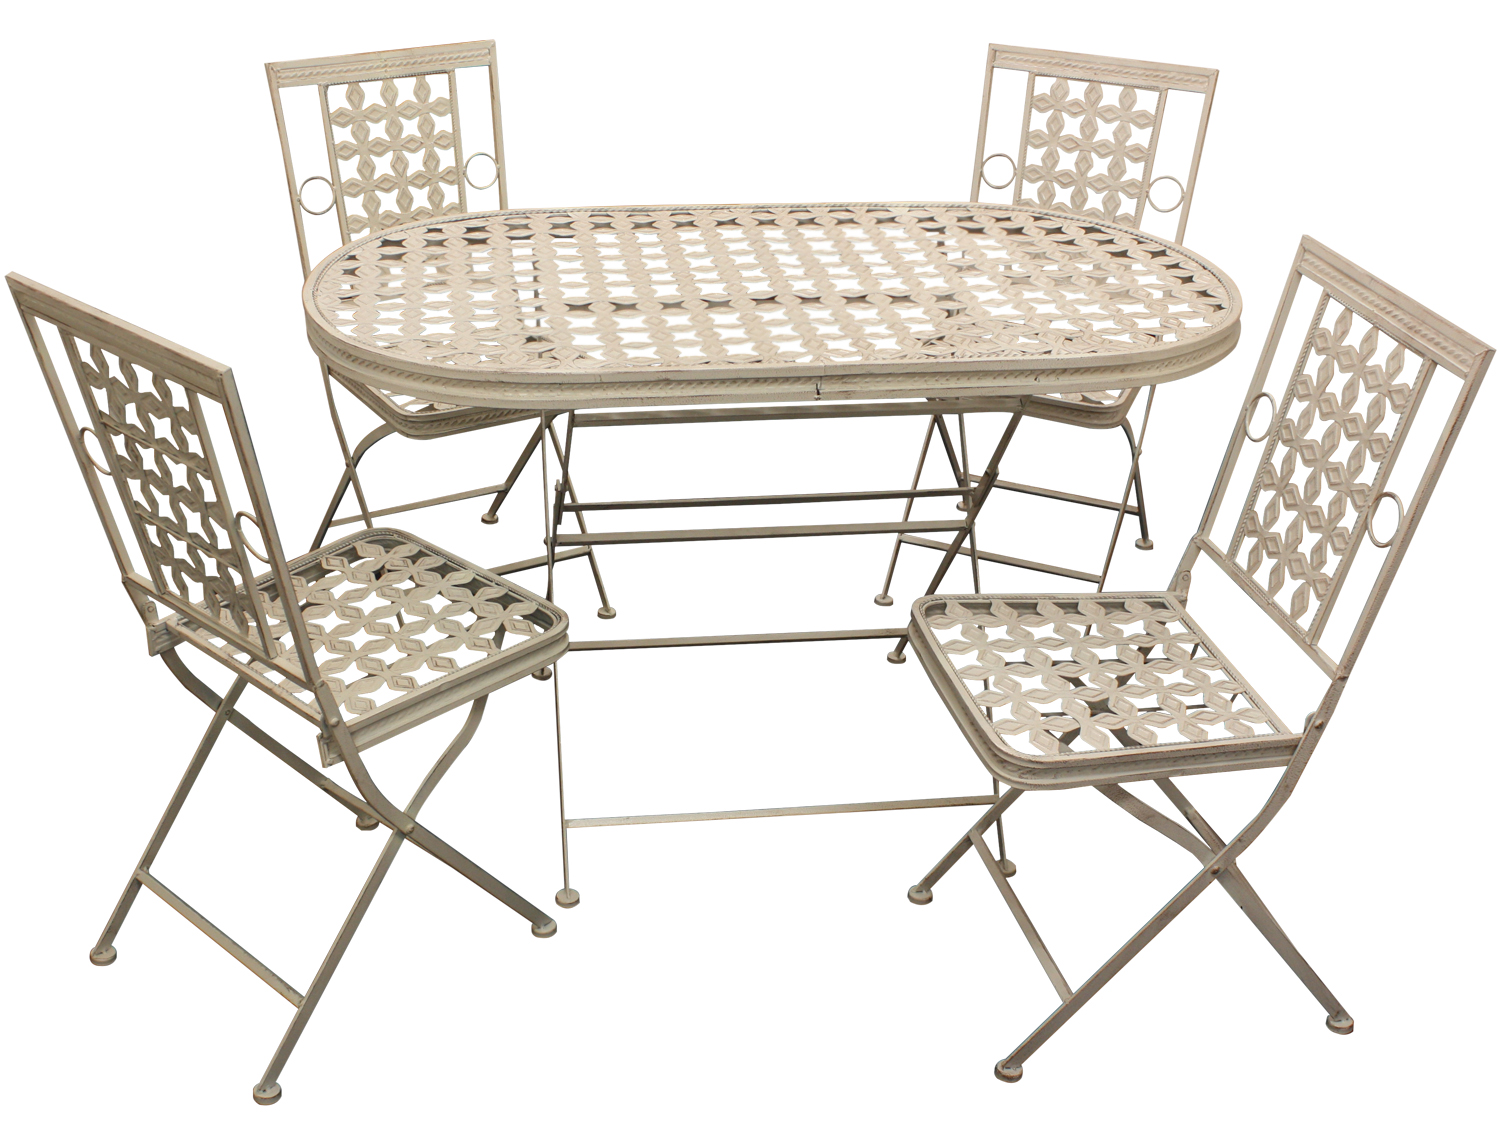 Maribelle folding metal outdoor garden patio dining table for Deck table and chairs